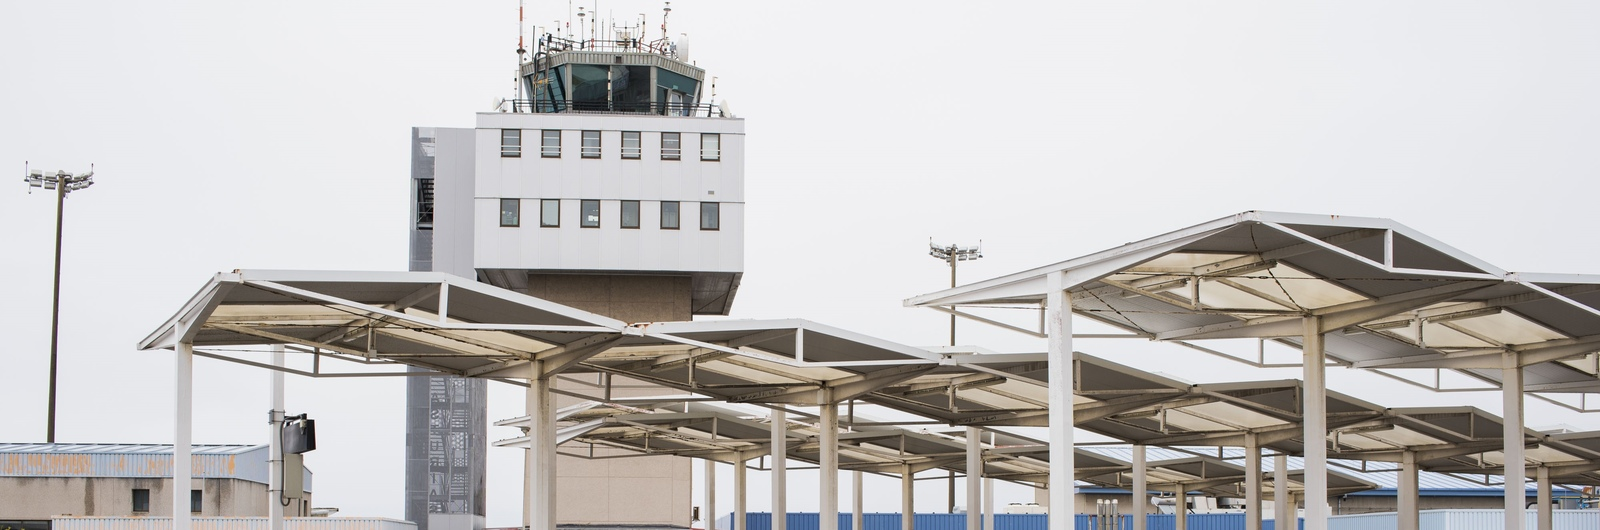 oviedo airport header